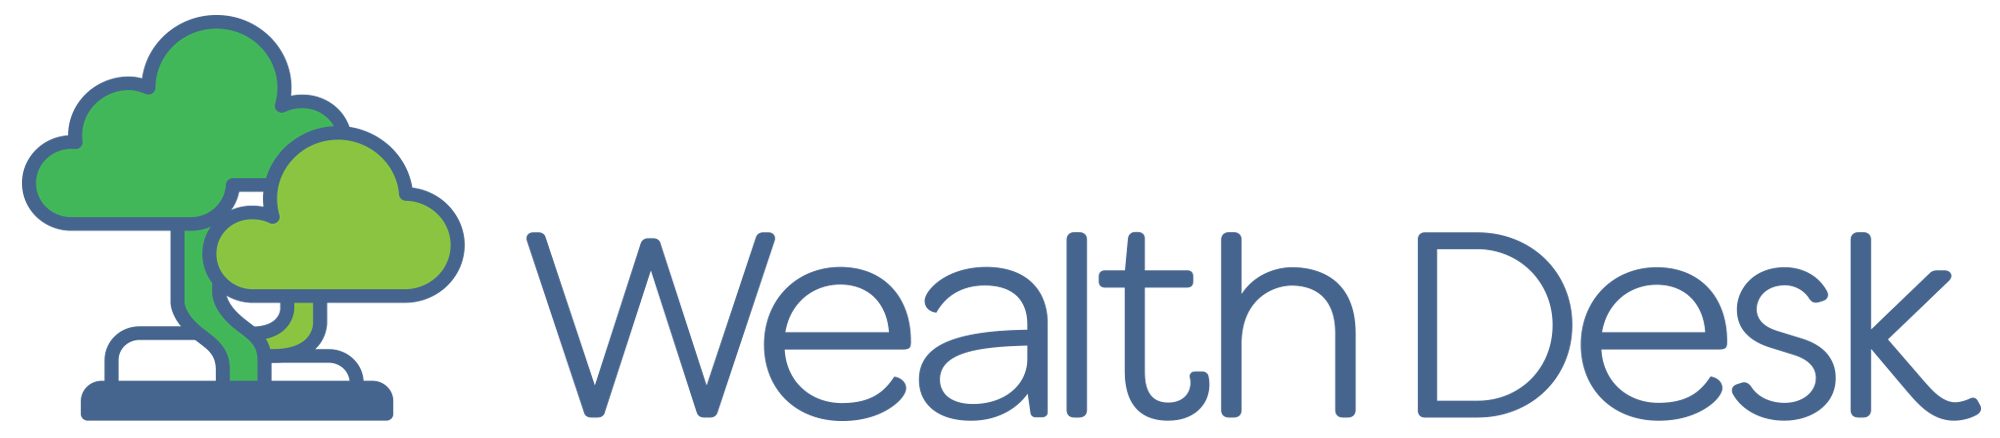 Wealth Desk Fitness Tracker Logo